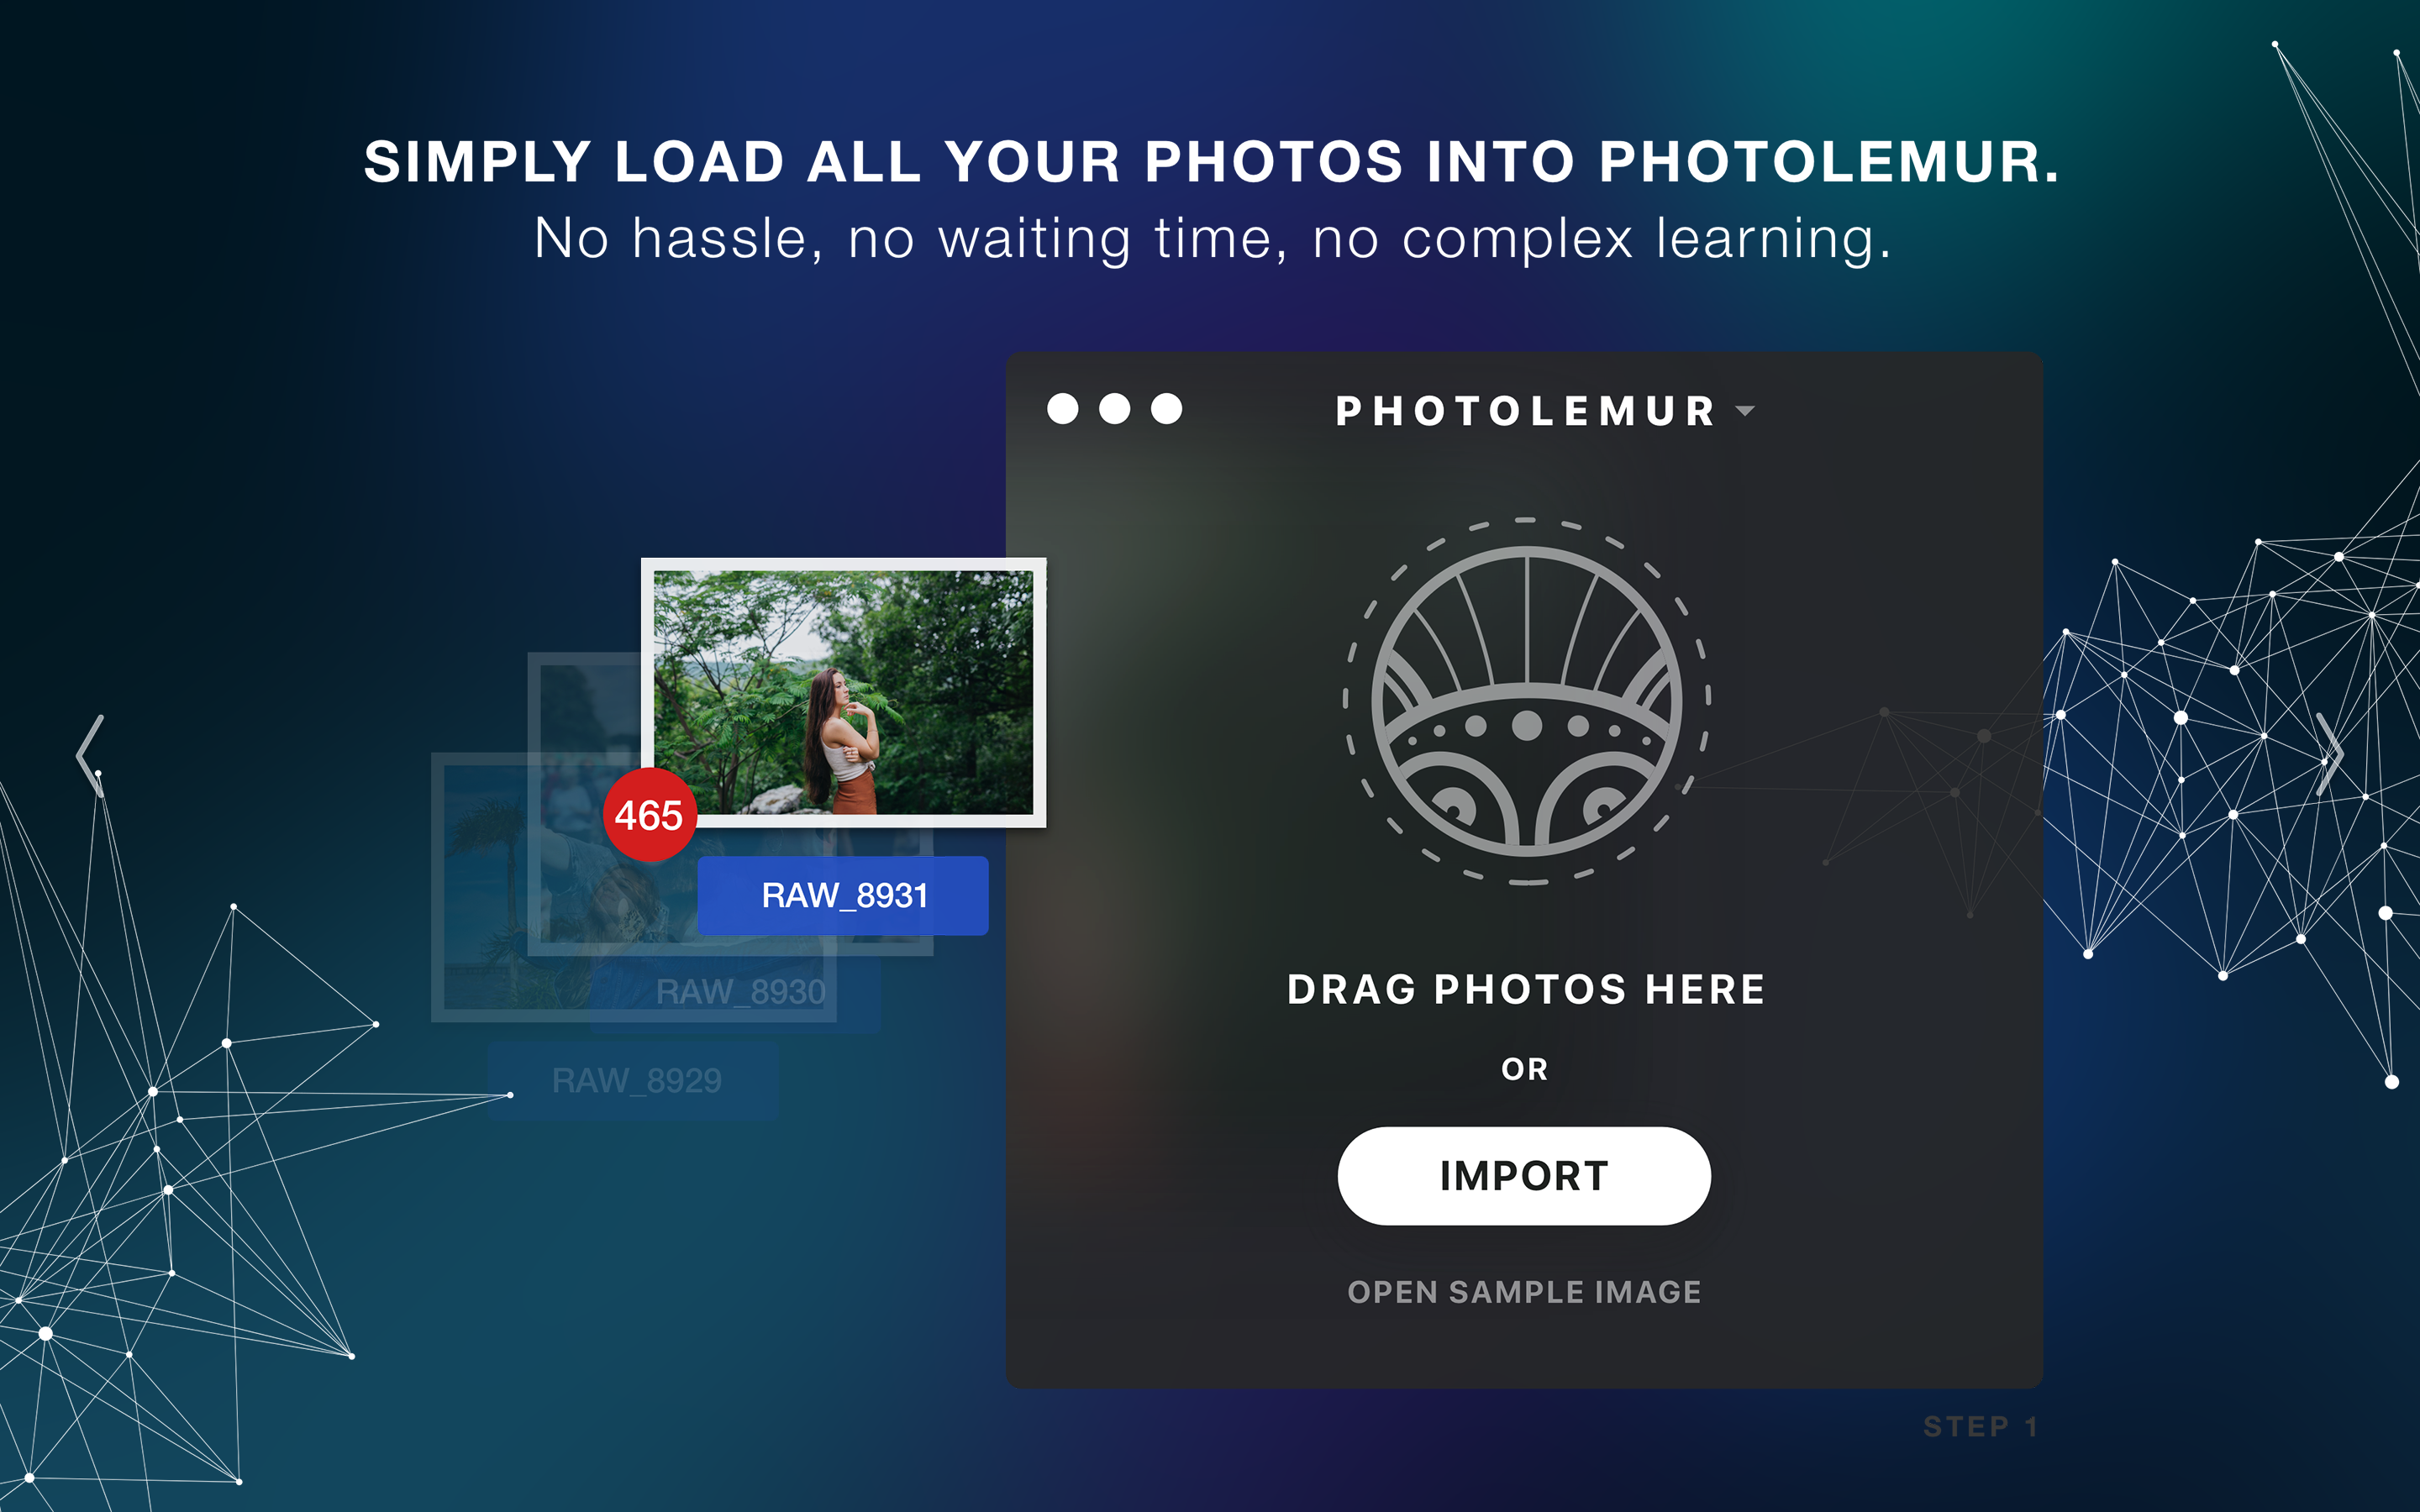 Simply load all your photos into Photolemur.